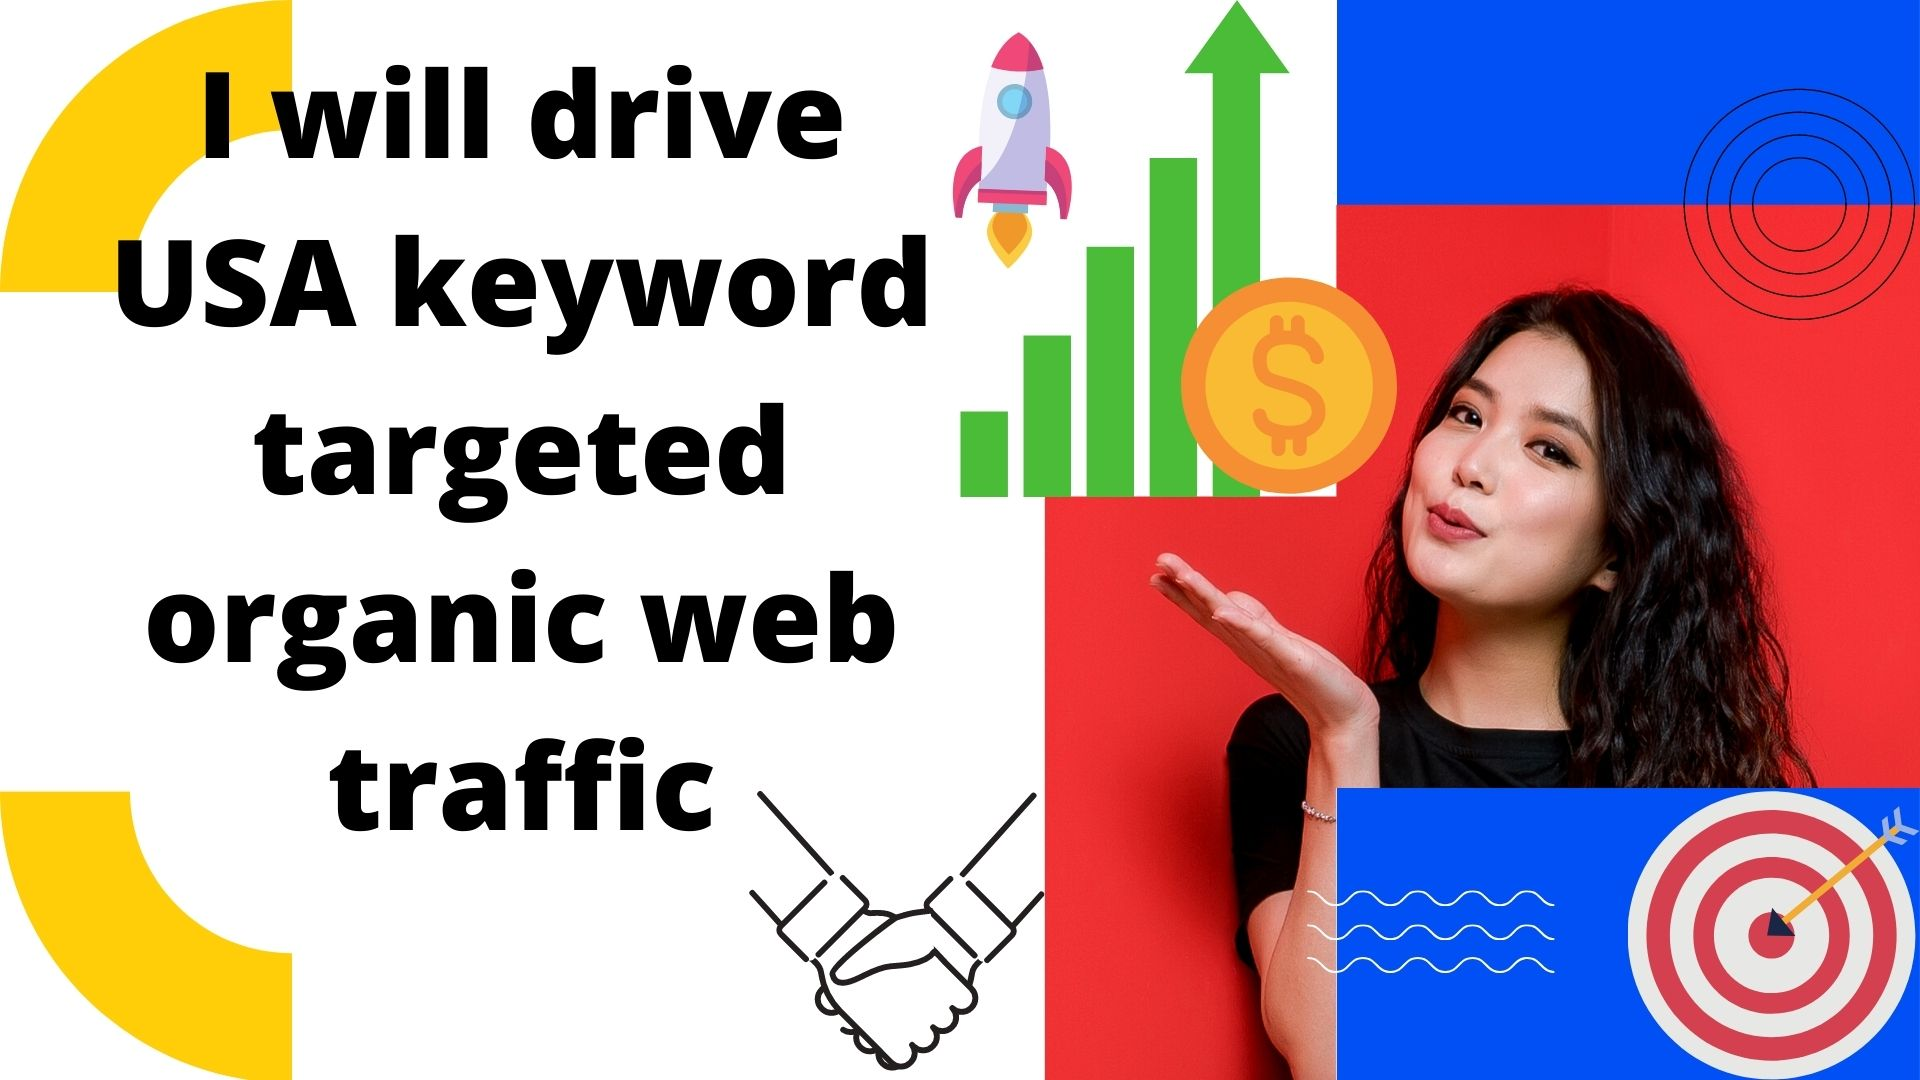 I will drive 8000 USA keyword targeted organic web traffic